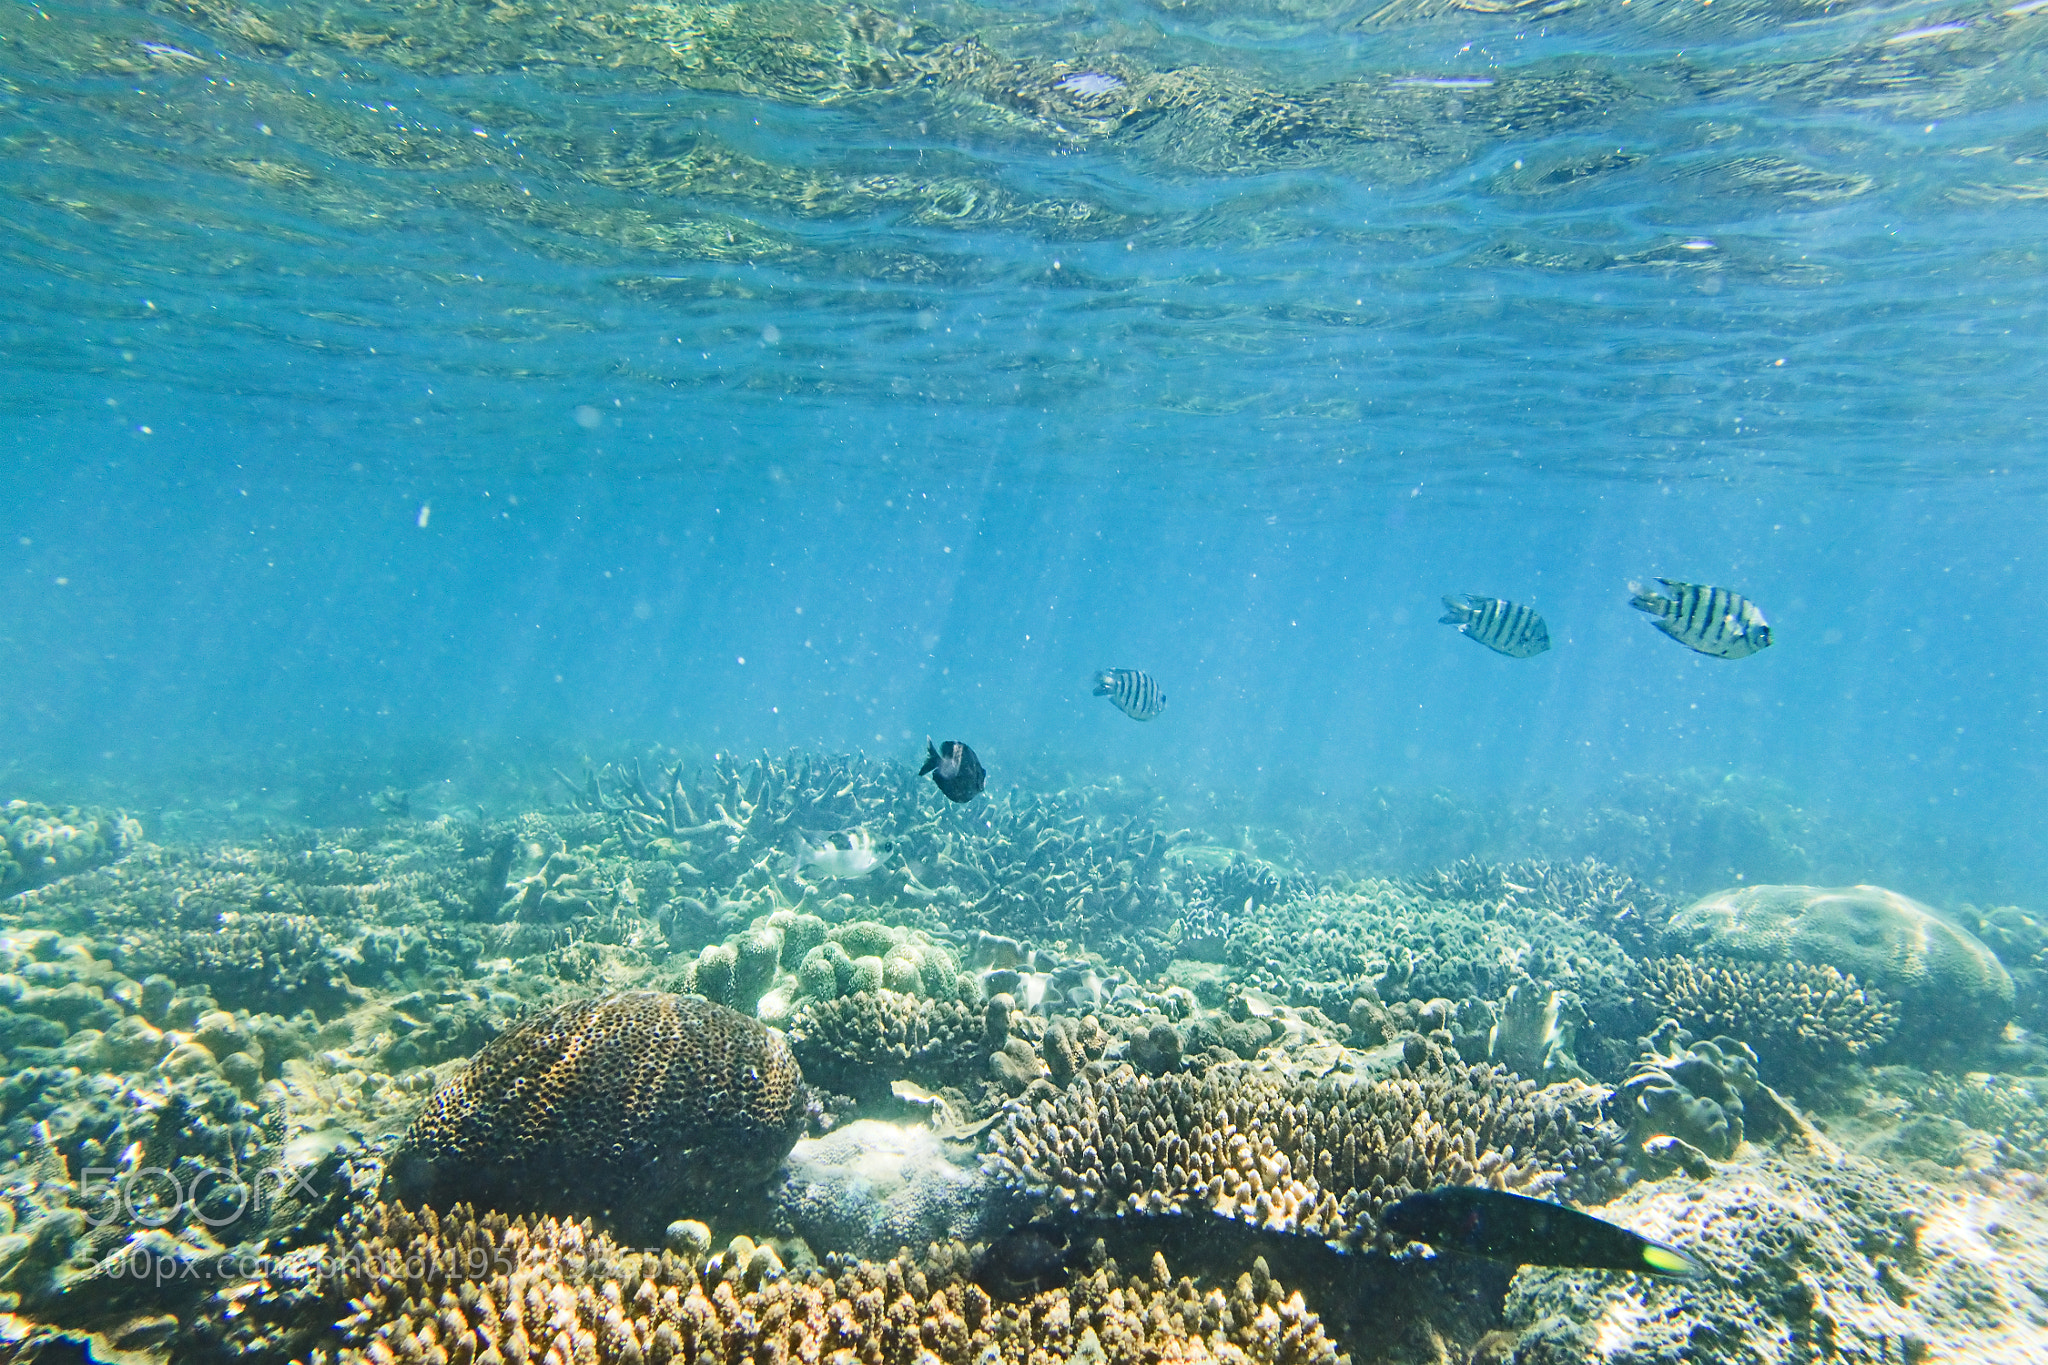 Underwater sealife of Coral sea Great Barrier Reef in Australian pacific waters during submerged snorkeling swimming. Striped fish and colonies of corals live in shallow saltwater.